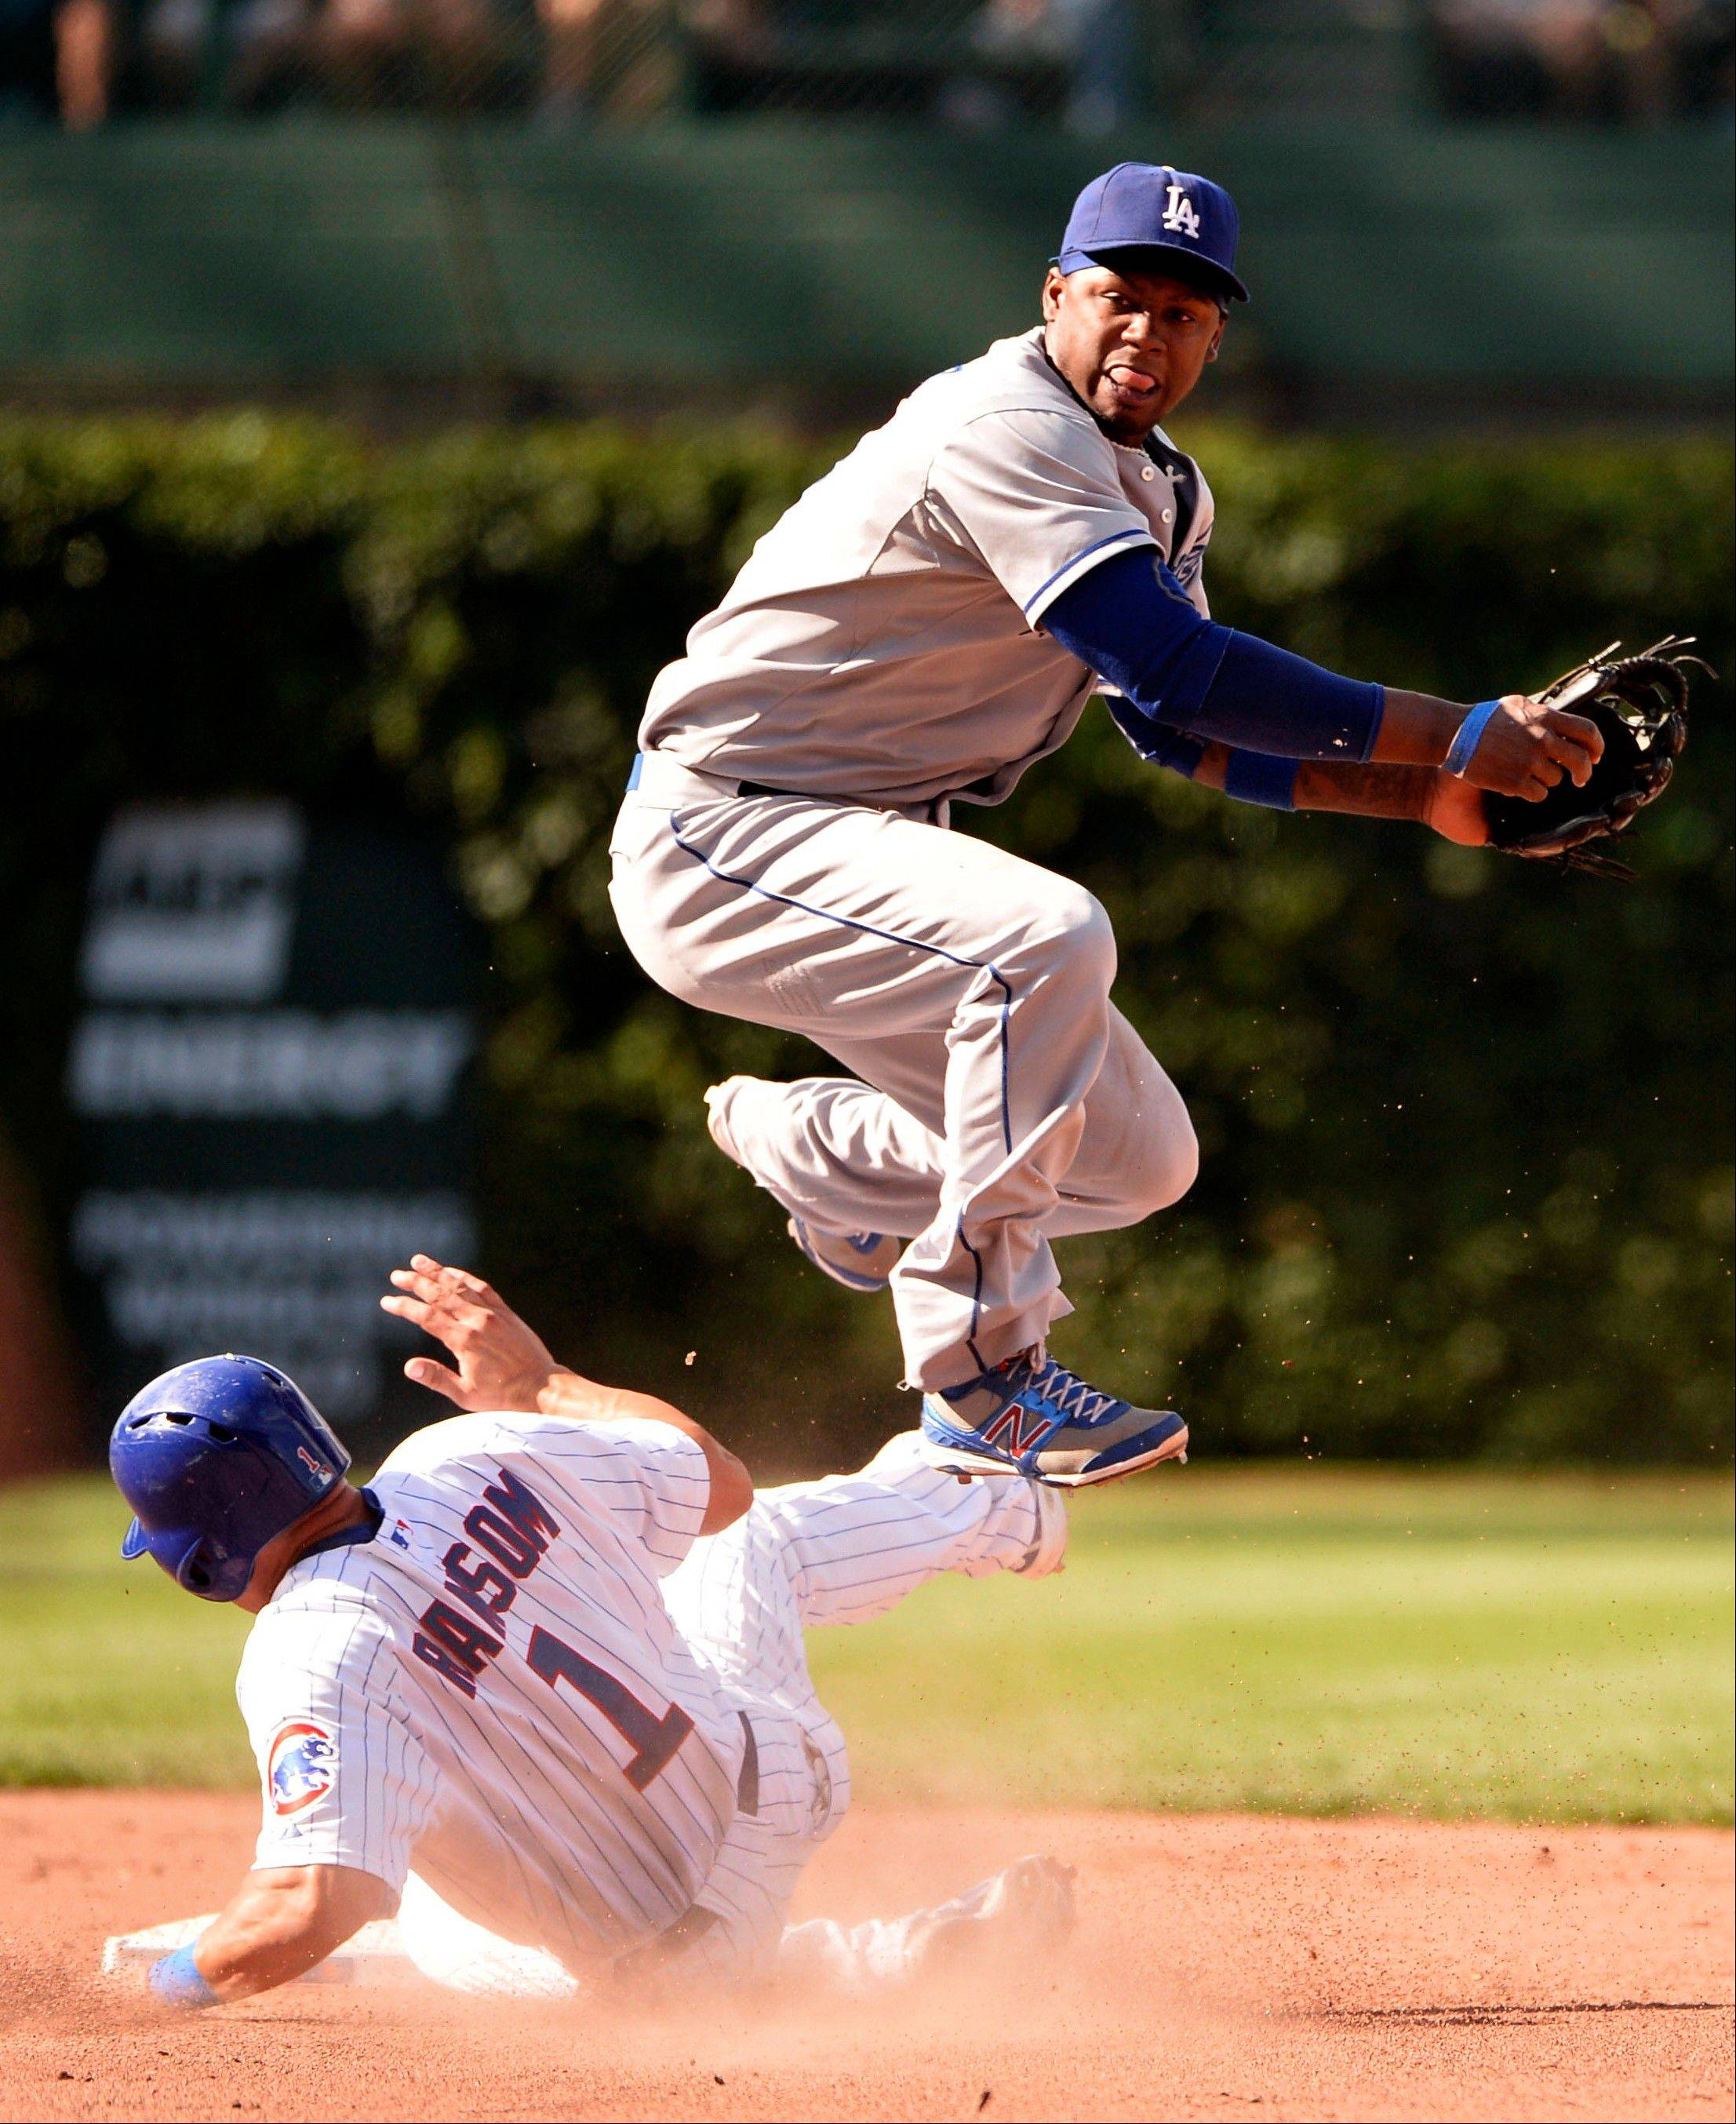 Dodgers shortstop Hanley Ramirez, right, leaps over Cody Ransom after turning a double play on a ground ball hit to second baseman Skip Schumaker by Darwin Barney.